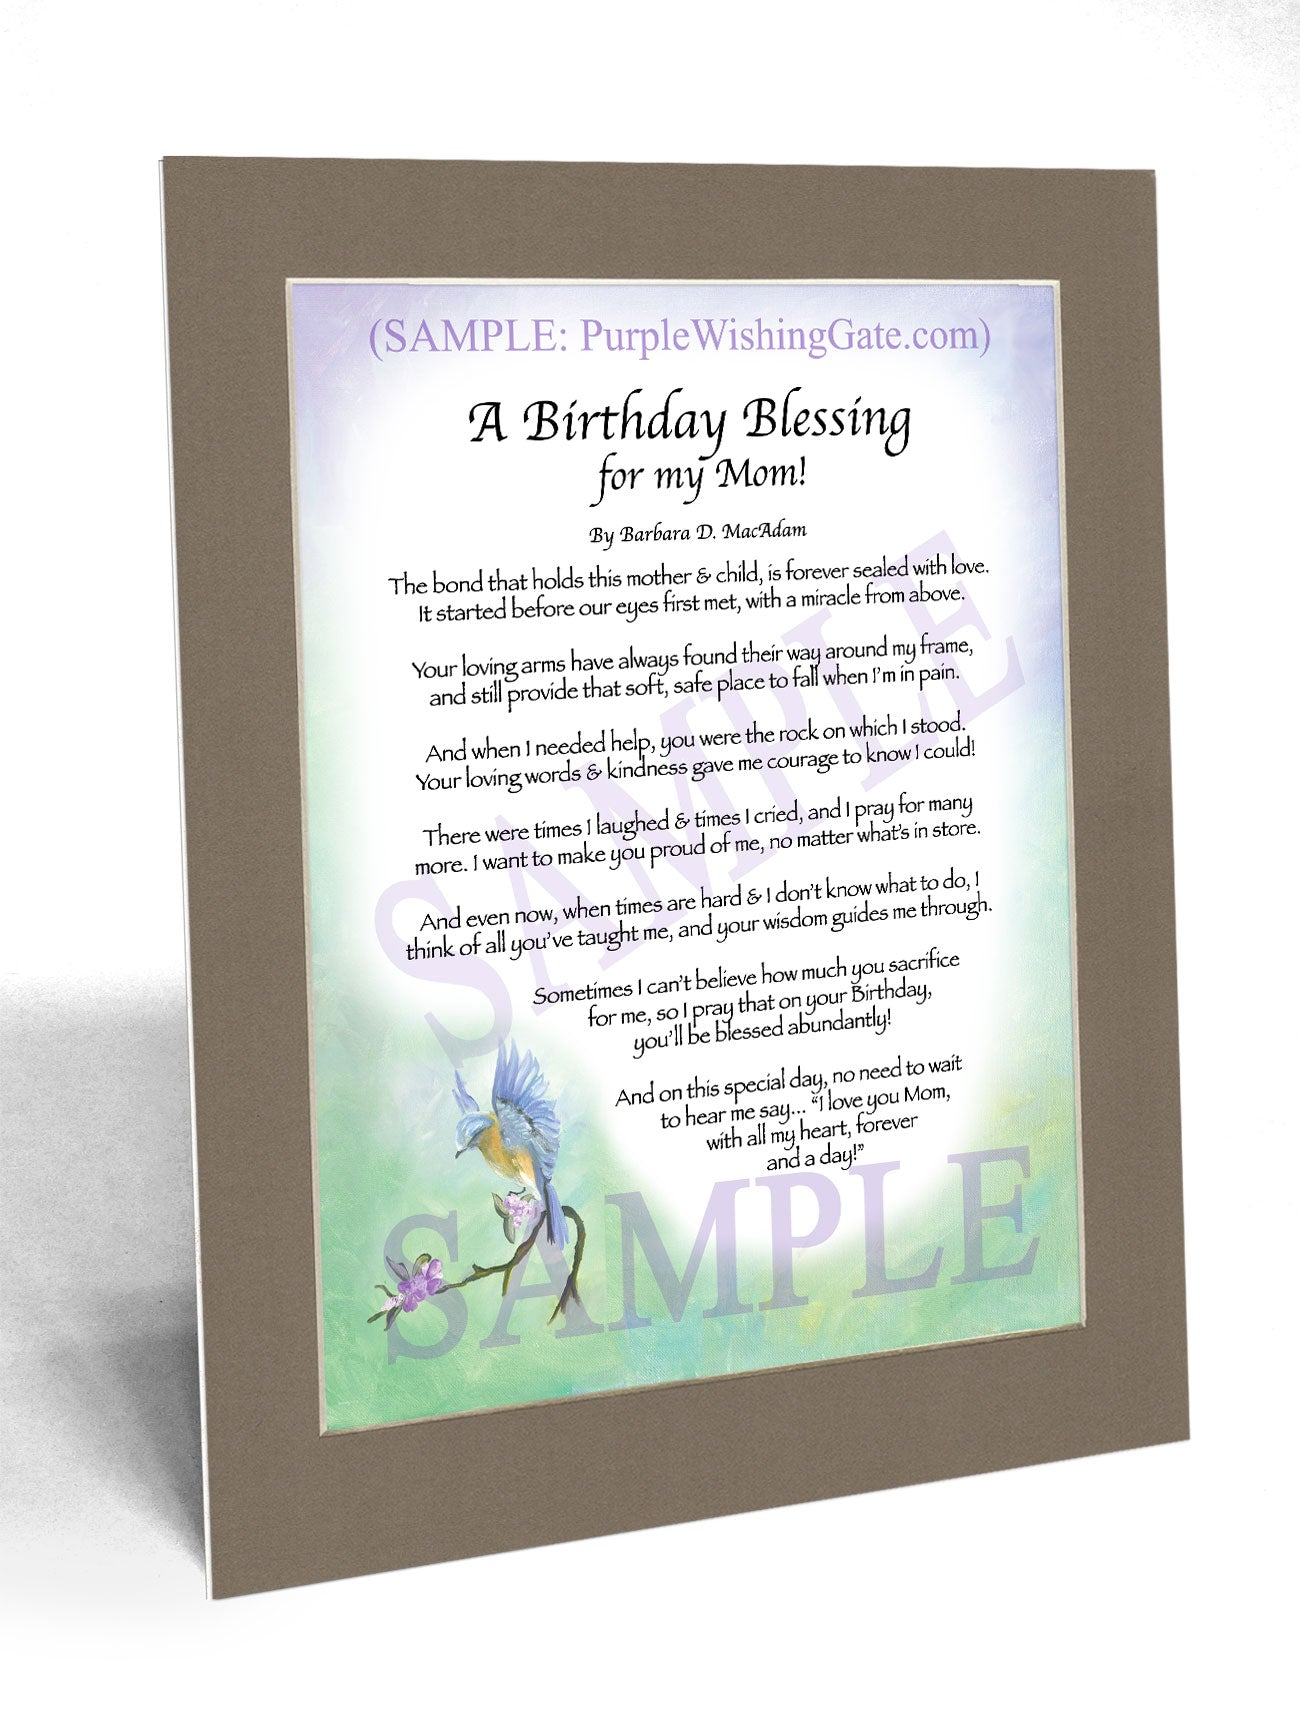 A Birthday Blessing for my Mom! - Birthday Gift - PurpleWishingGate.com